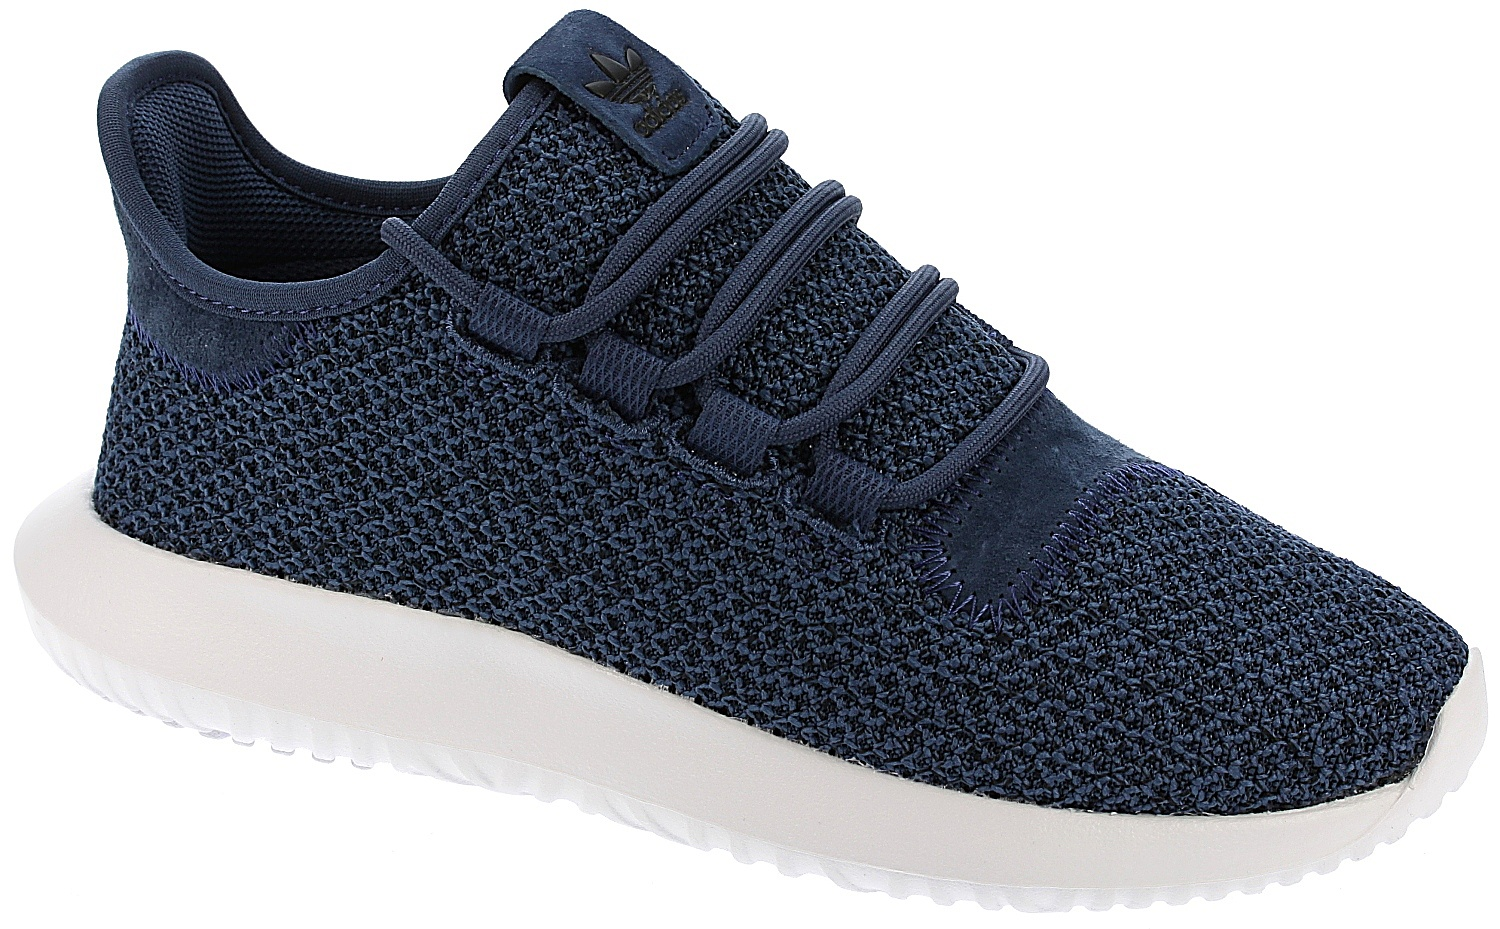 e707eeeb6 boty adidas Originals Tubular Shadow - Noble Indigo/Noble Indigo/White -  Snowboard shop, skateshop - blackcomb.cz